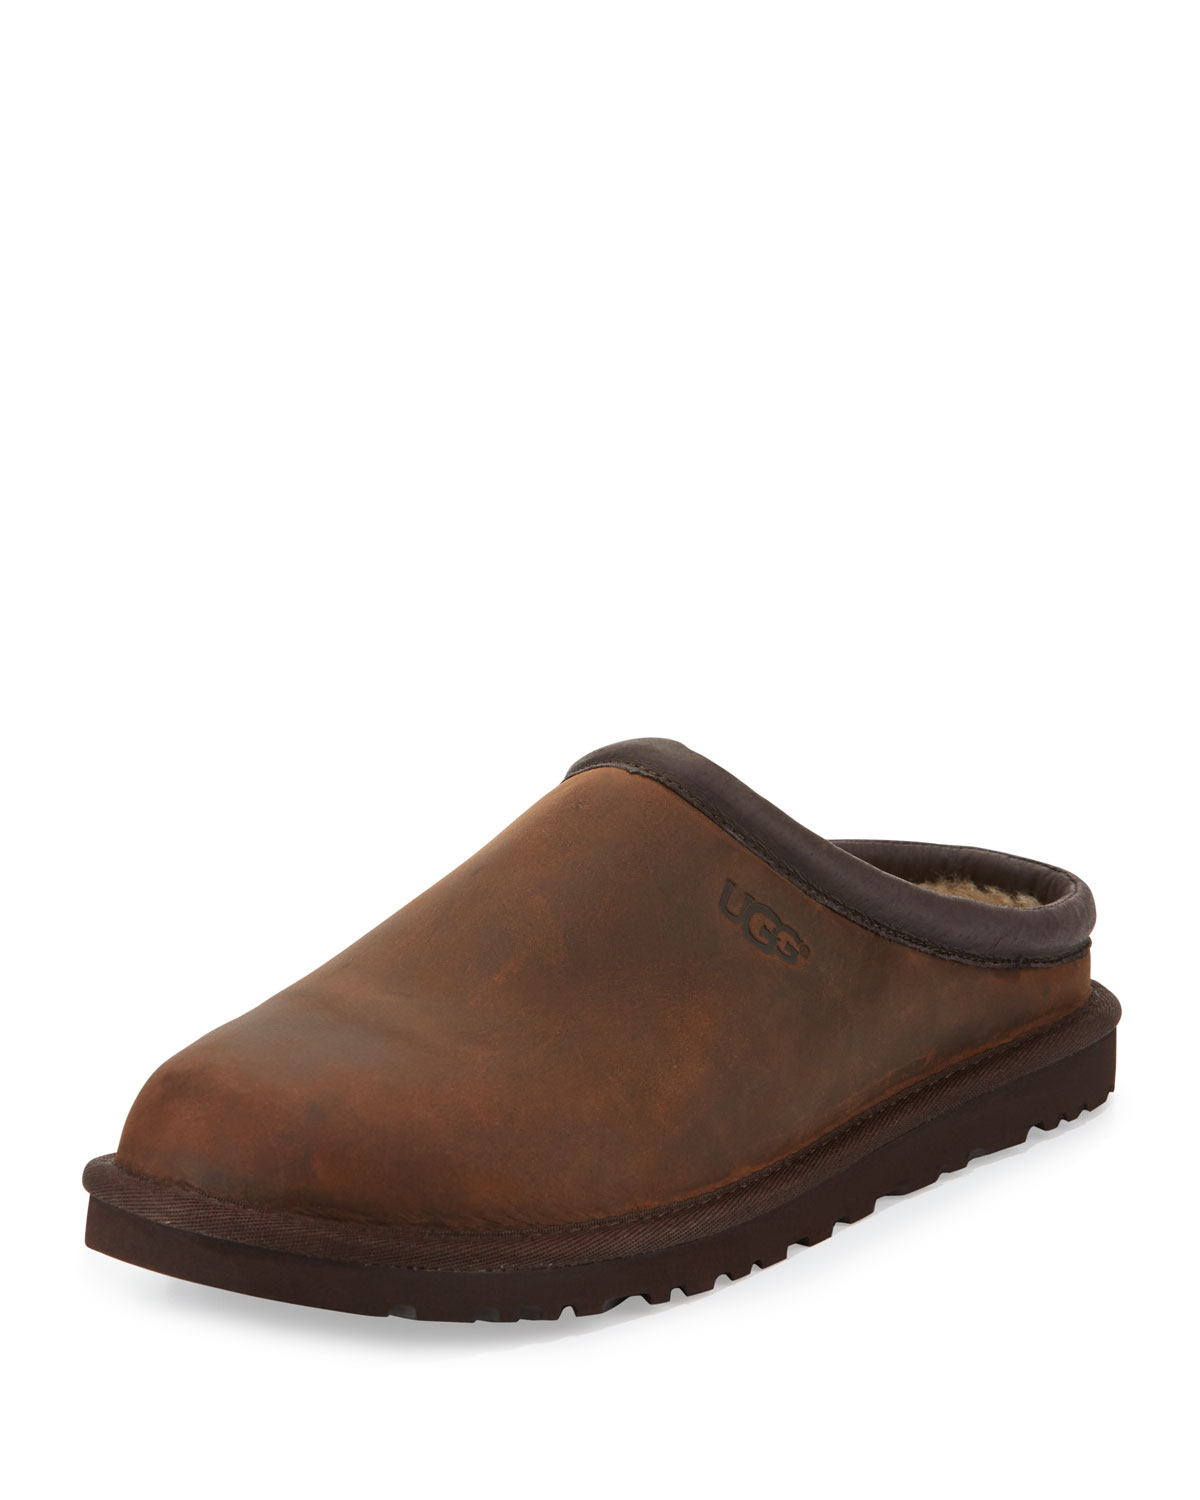 e4654d12ea8 Men's Classic Clog Slipper, Stout